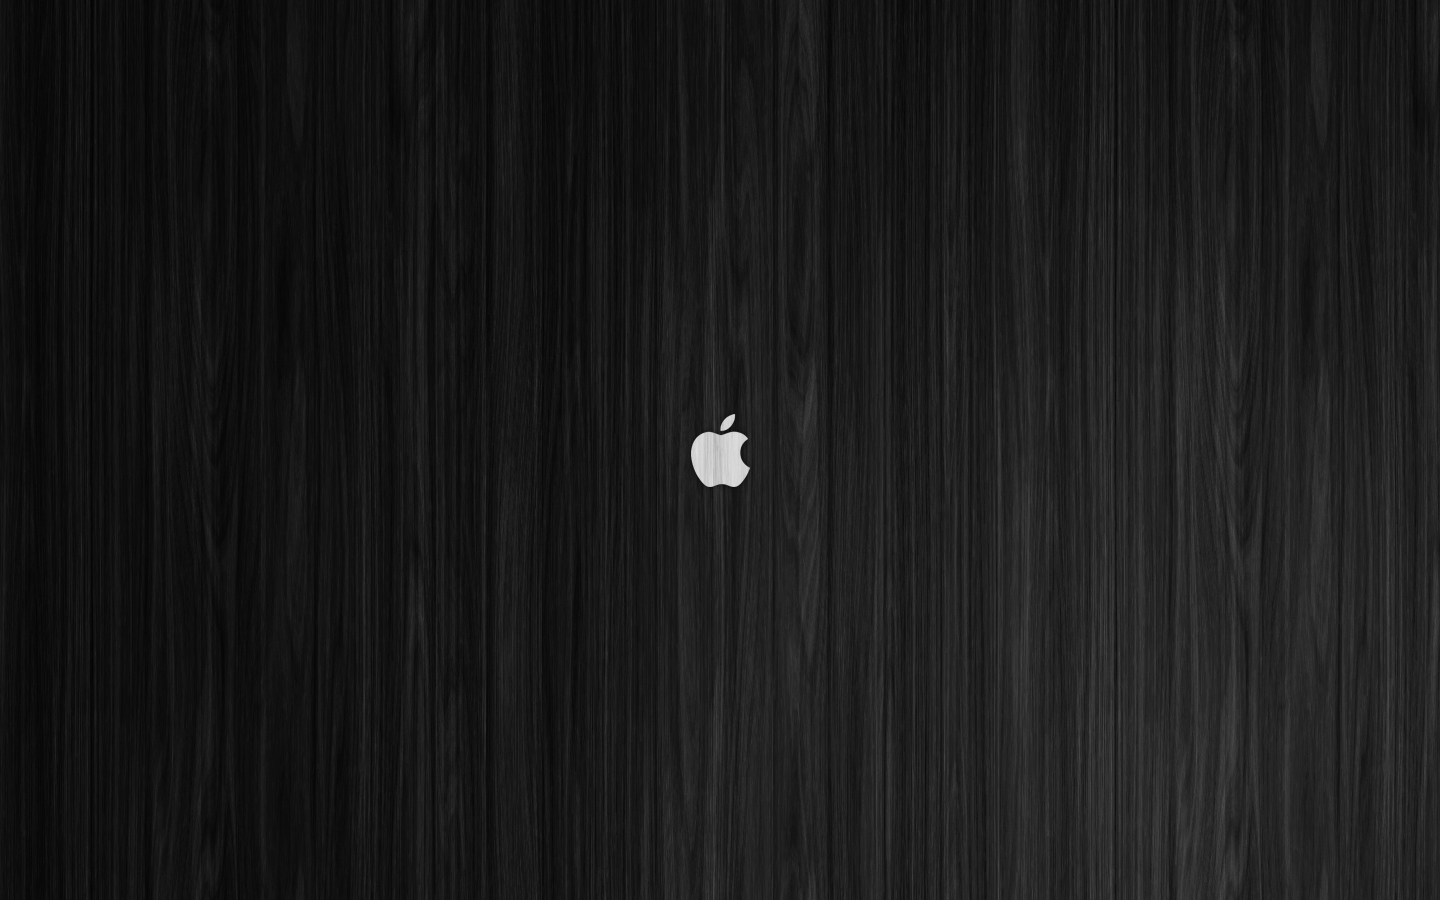 White Apple on Black Wood (Mac Wallpaper) by ZGraphx on DeviantArt